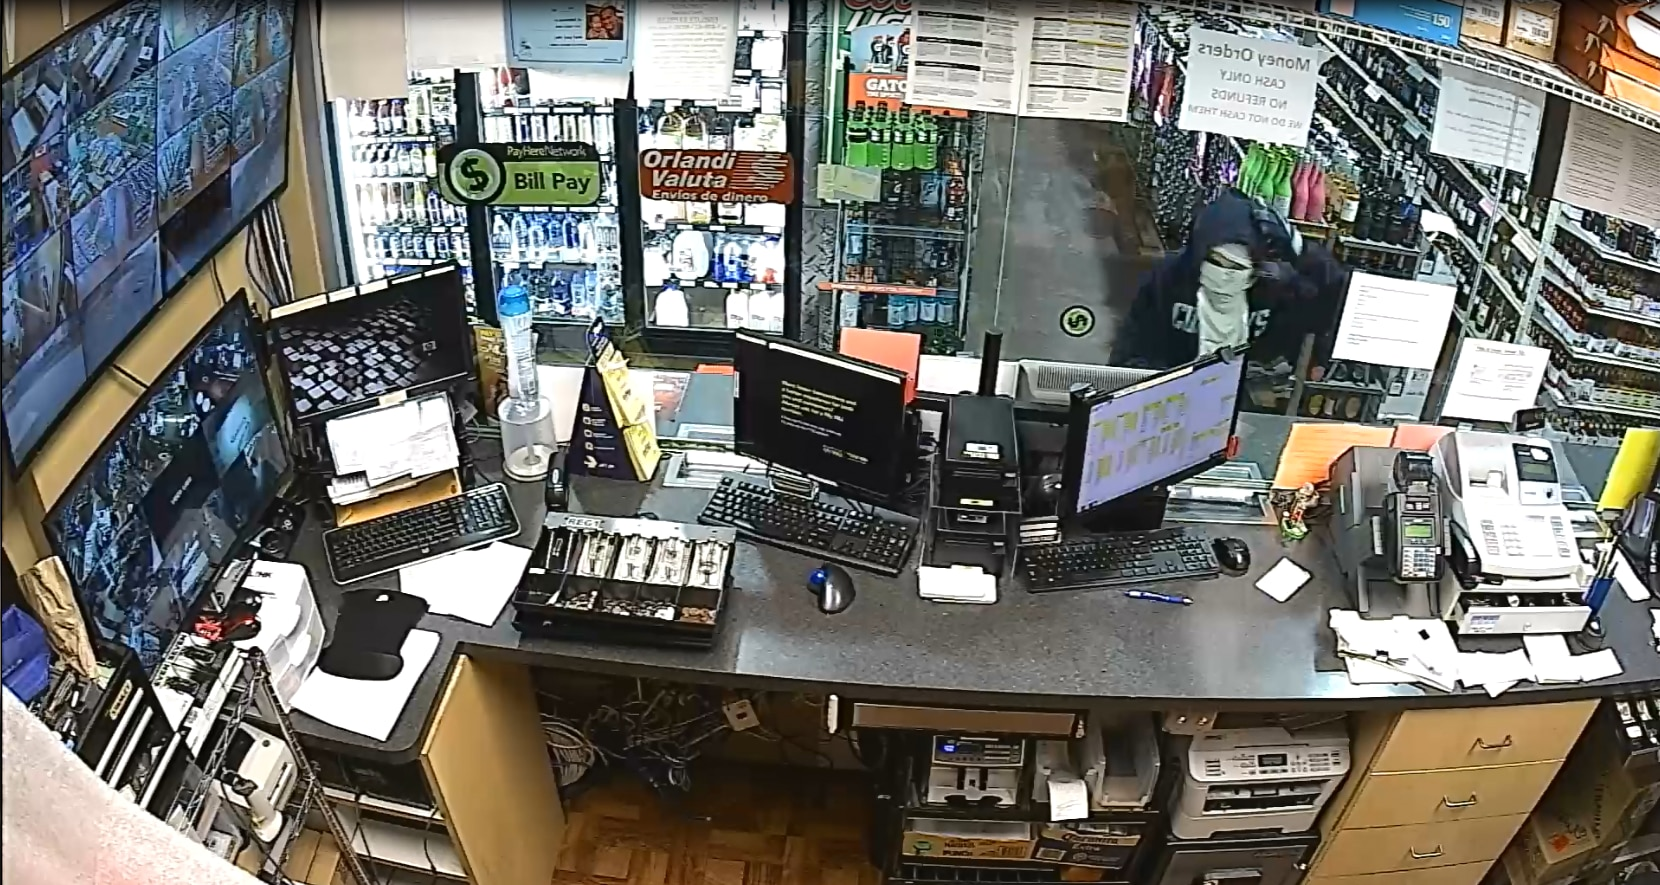 Police released surveillance footage Thursday of the two males they said went into the store with handguns.